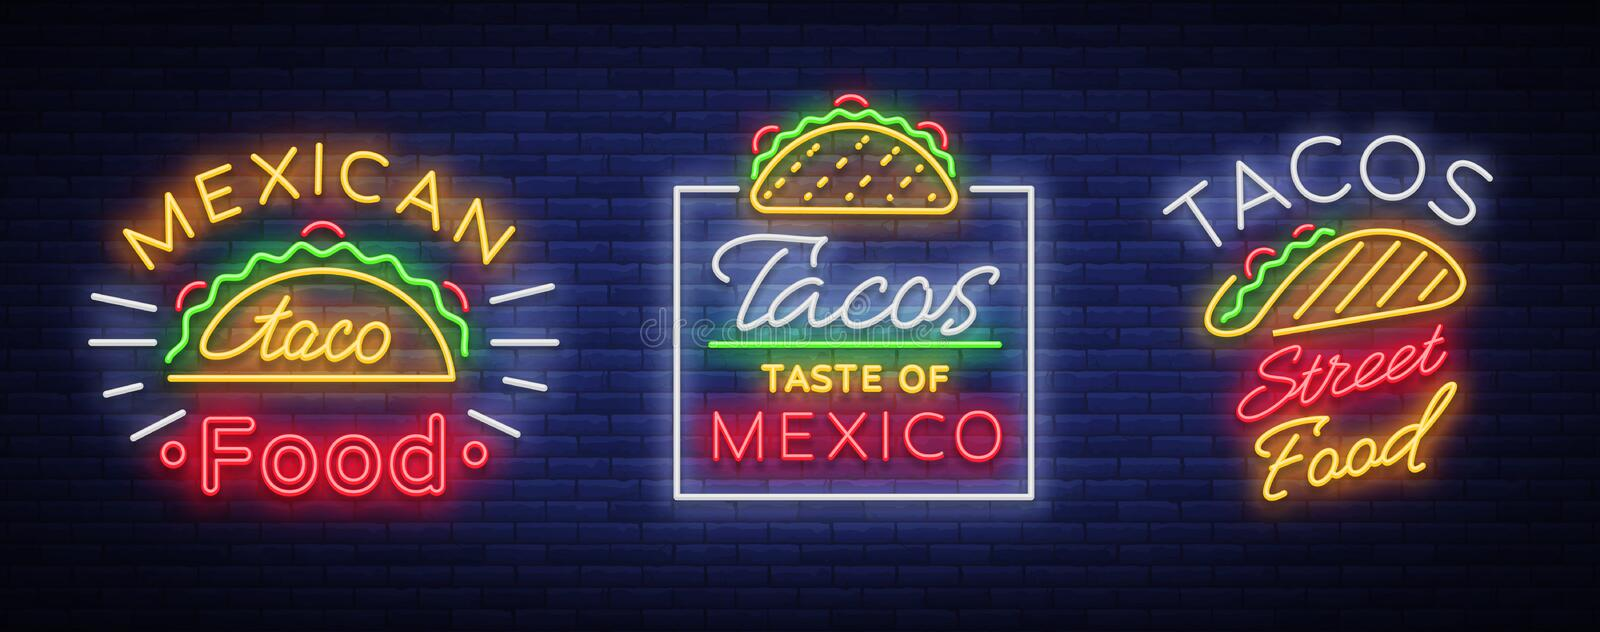 Tacos set of neon-style logos. Collection of neon signs, vector illustration